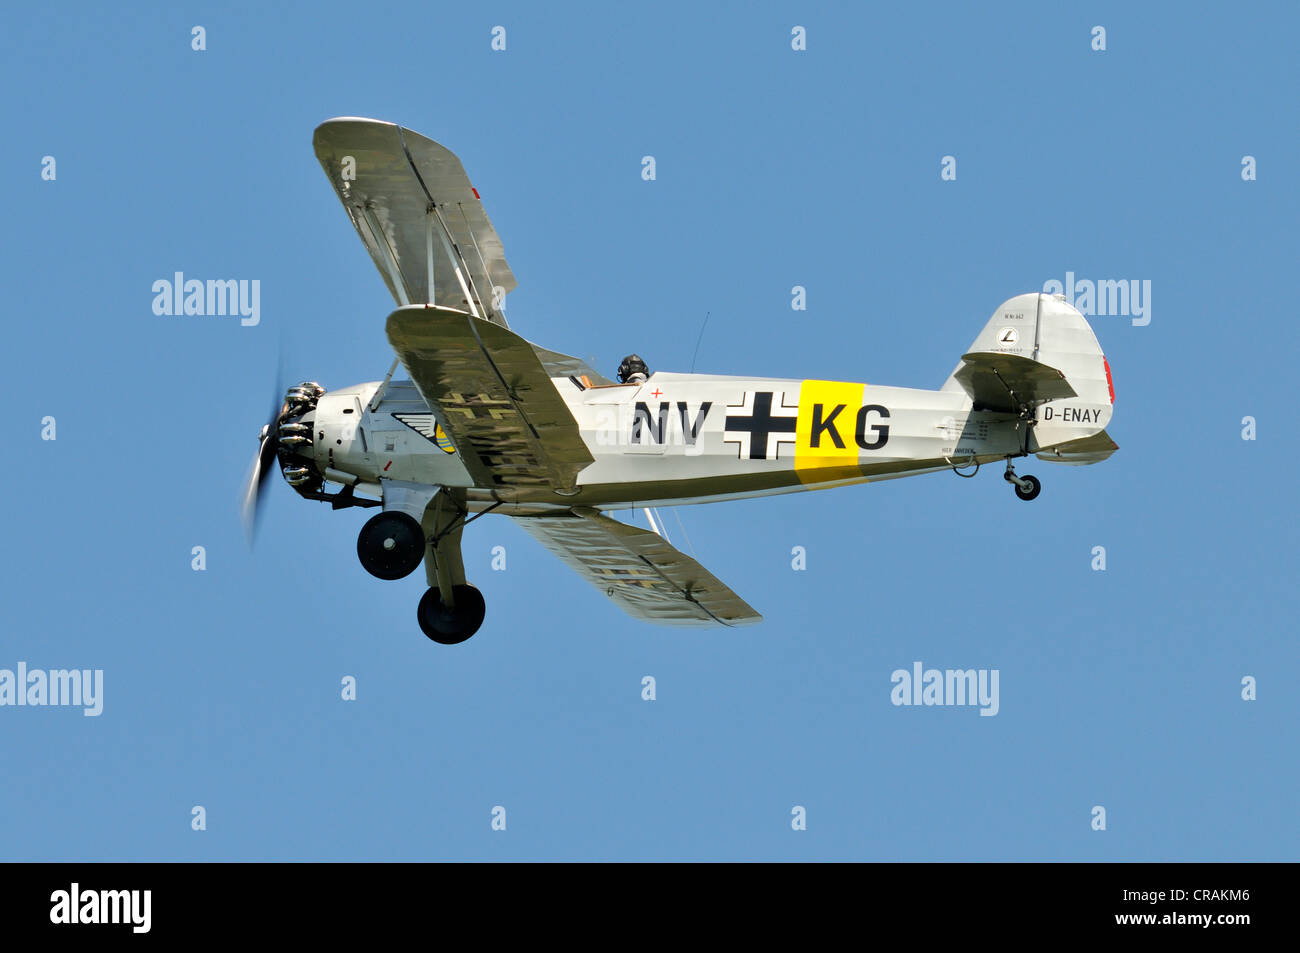 German biplane, Focke-Wulf Fw 44, first flight in 1932, Europe's largest meeting of vintage aircraft in Hahnweide - Stock Image